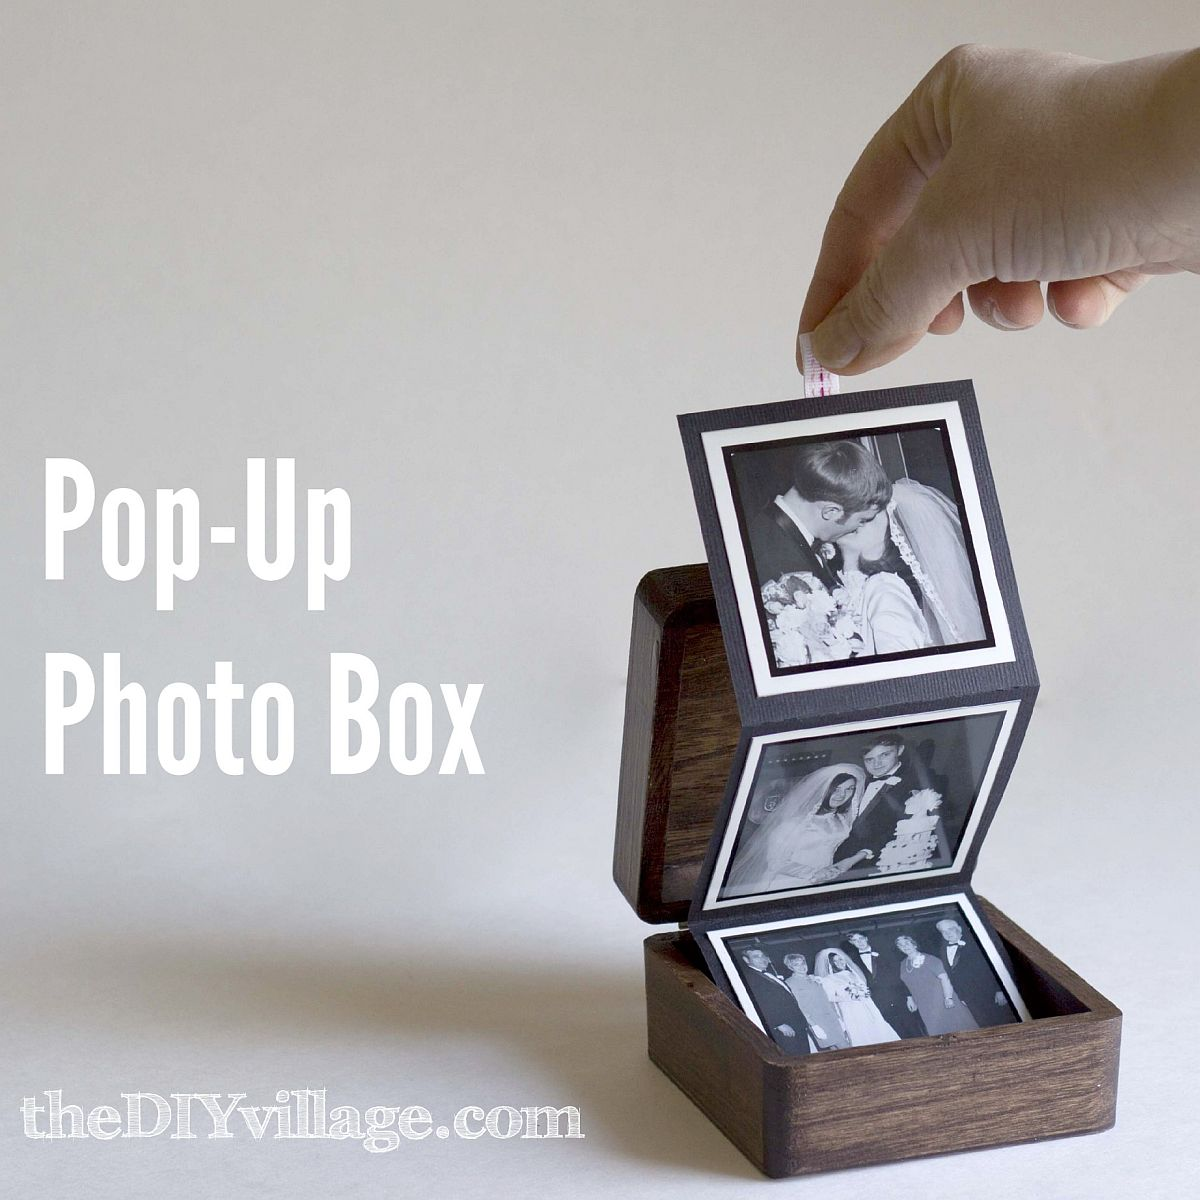 Lovely Pop-Up Photo Box for Valentine's Day